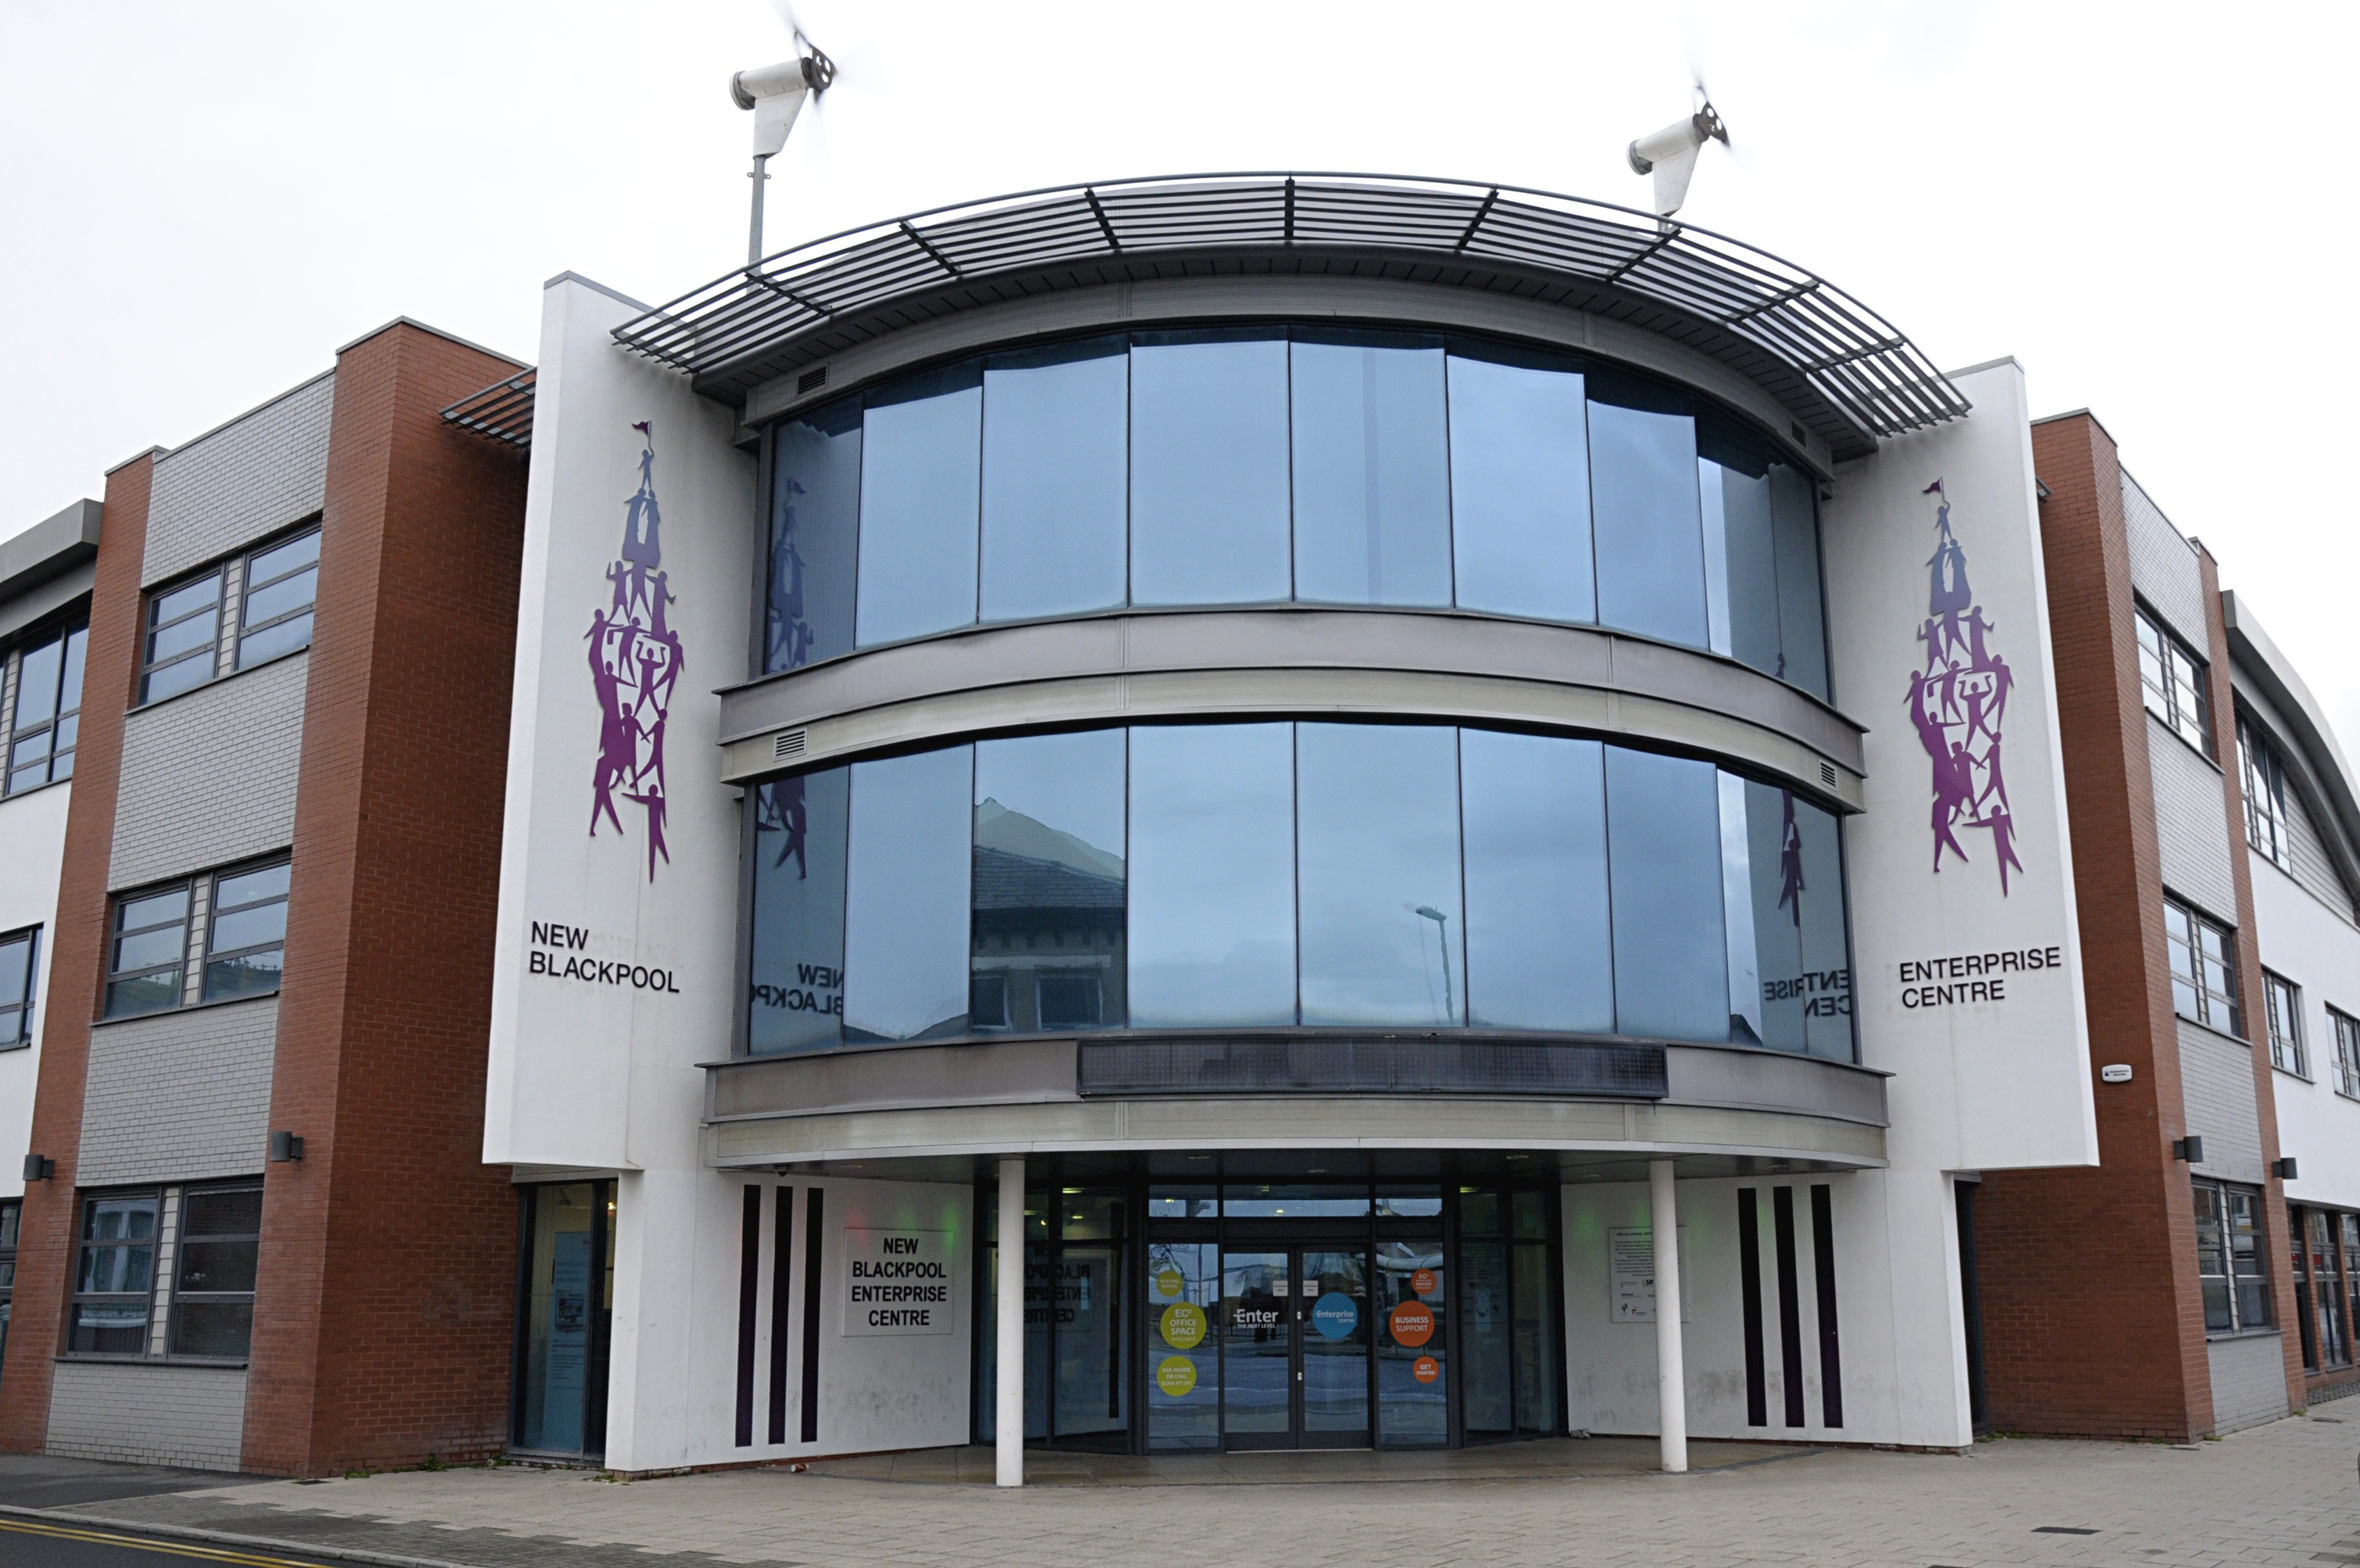 Blackpool Enterprise Centre